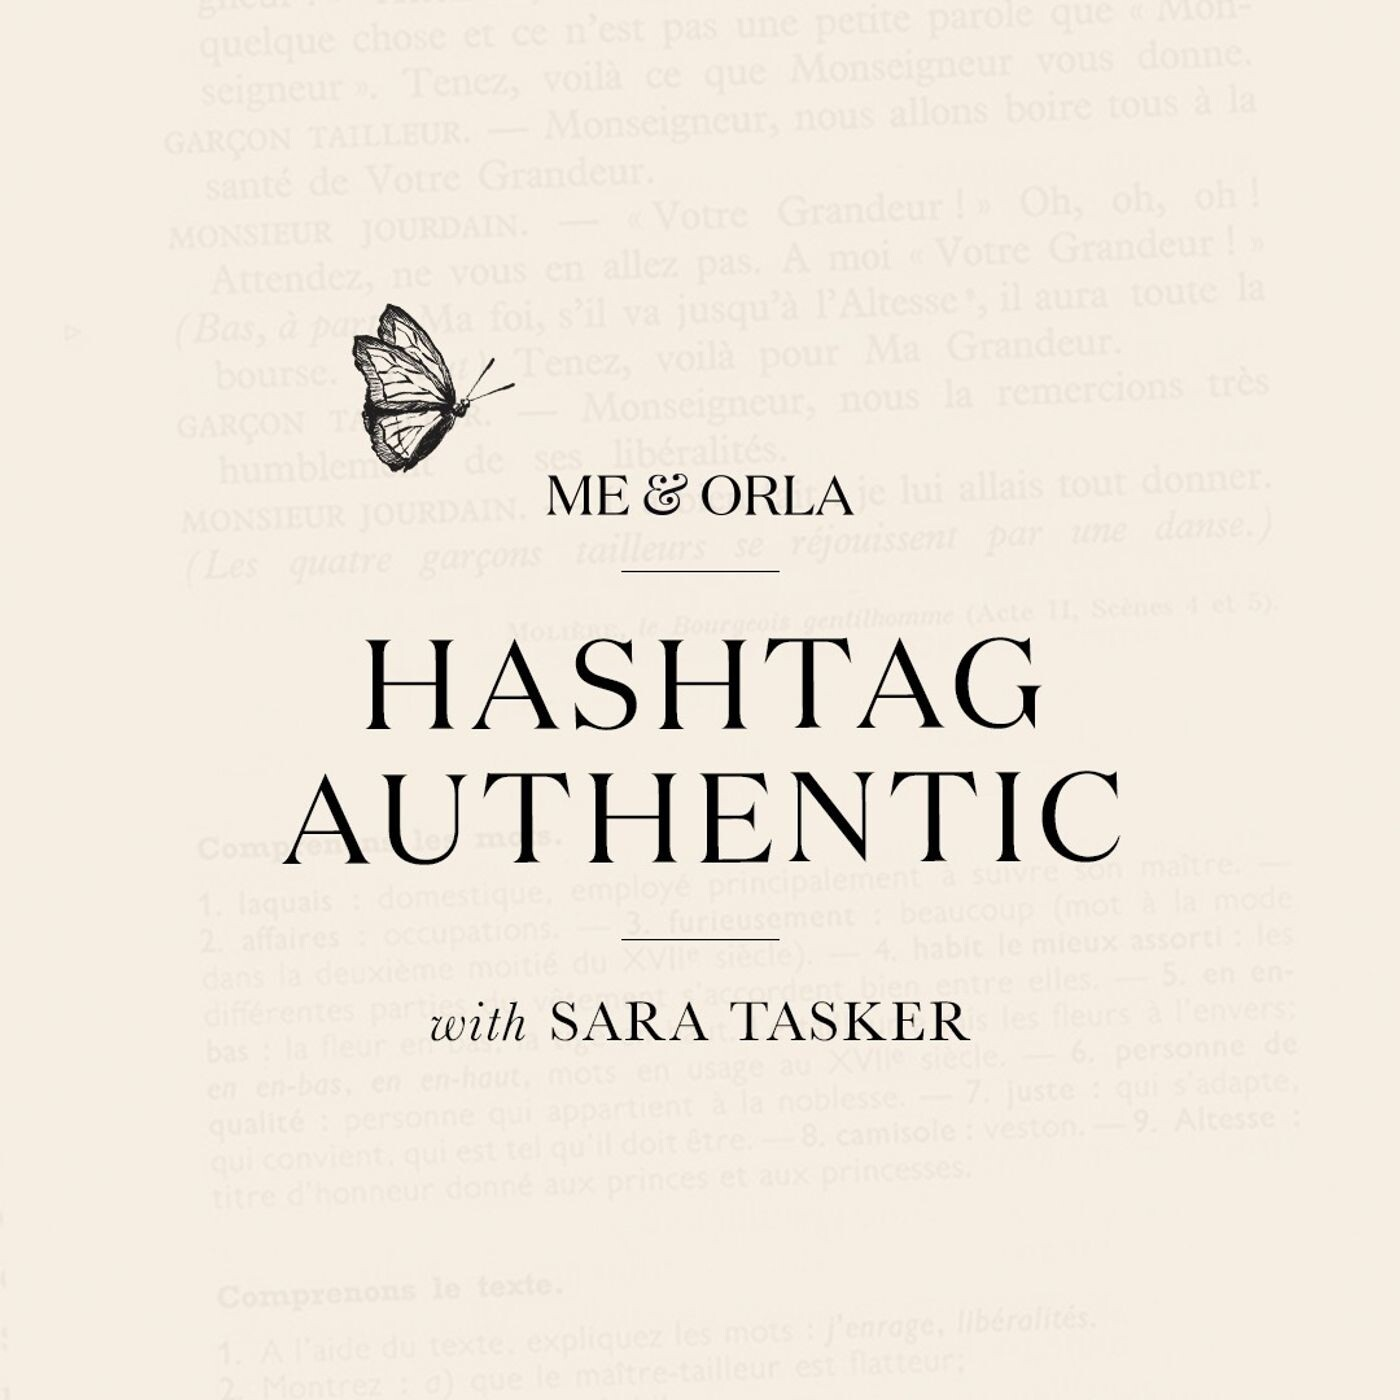 Hashtag Authentic - for Instagram, Blogging and be